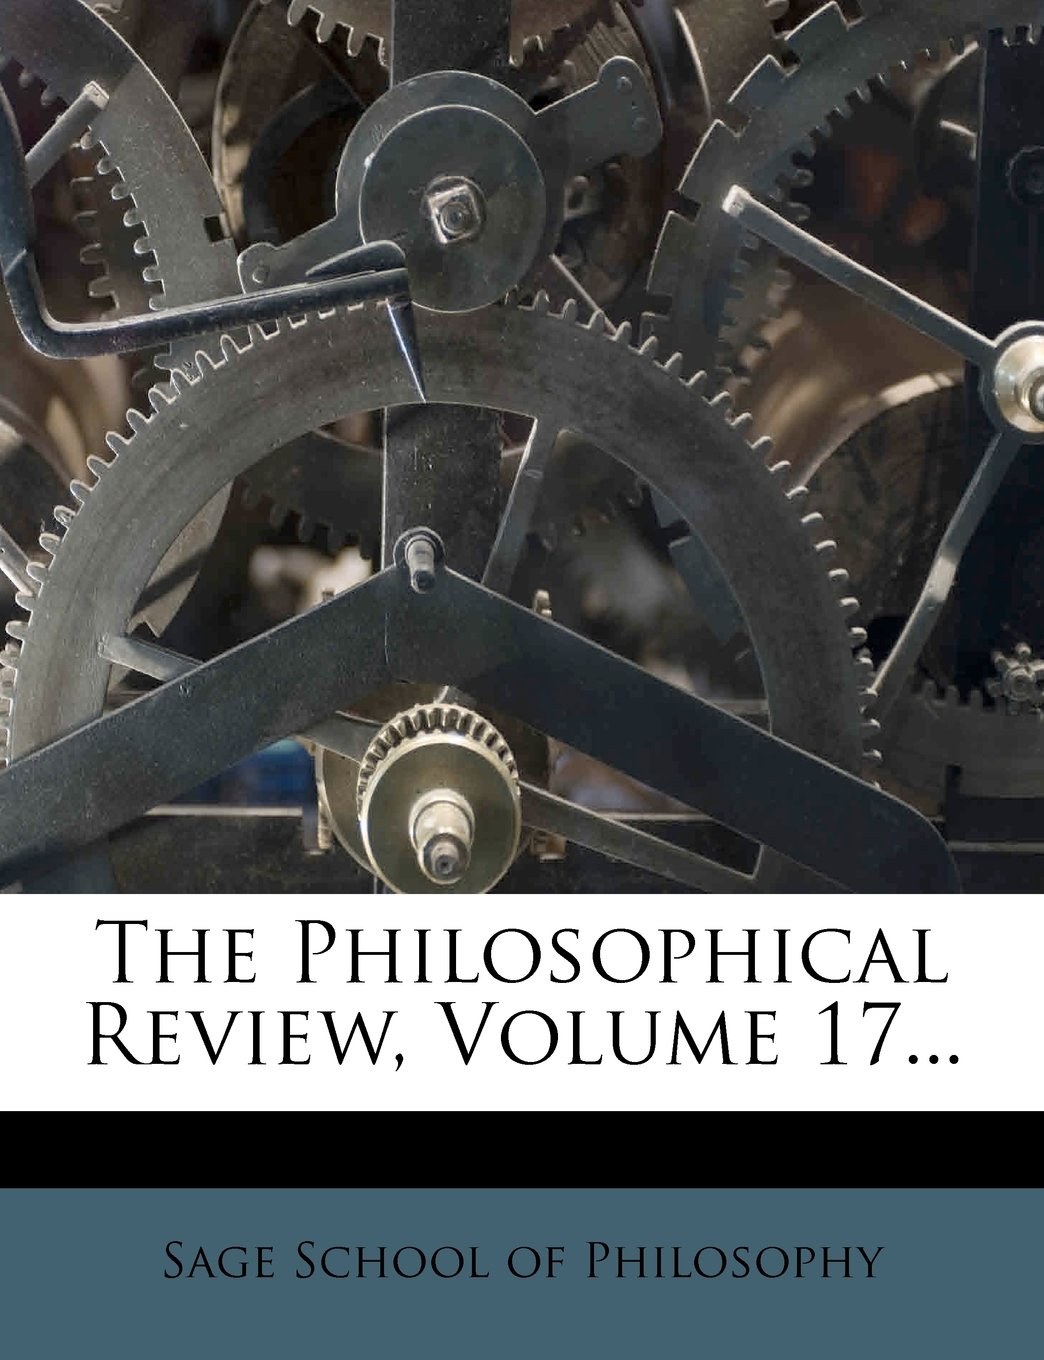 The Philosophical Review, Volume 17... pdf